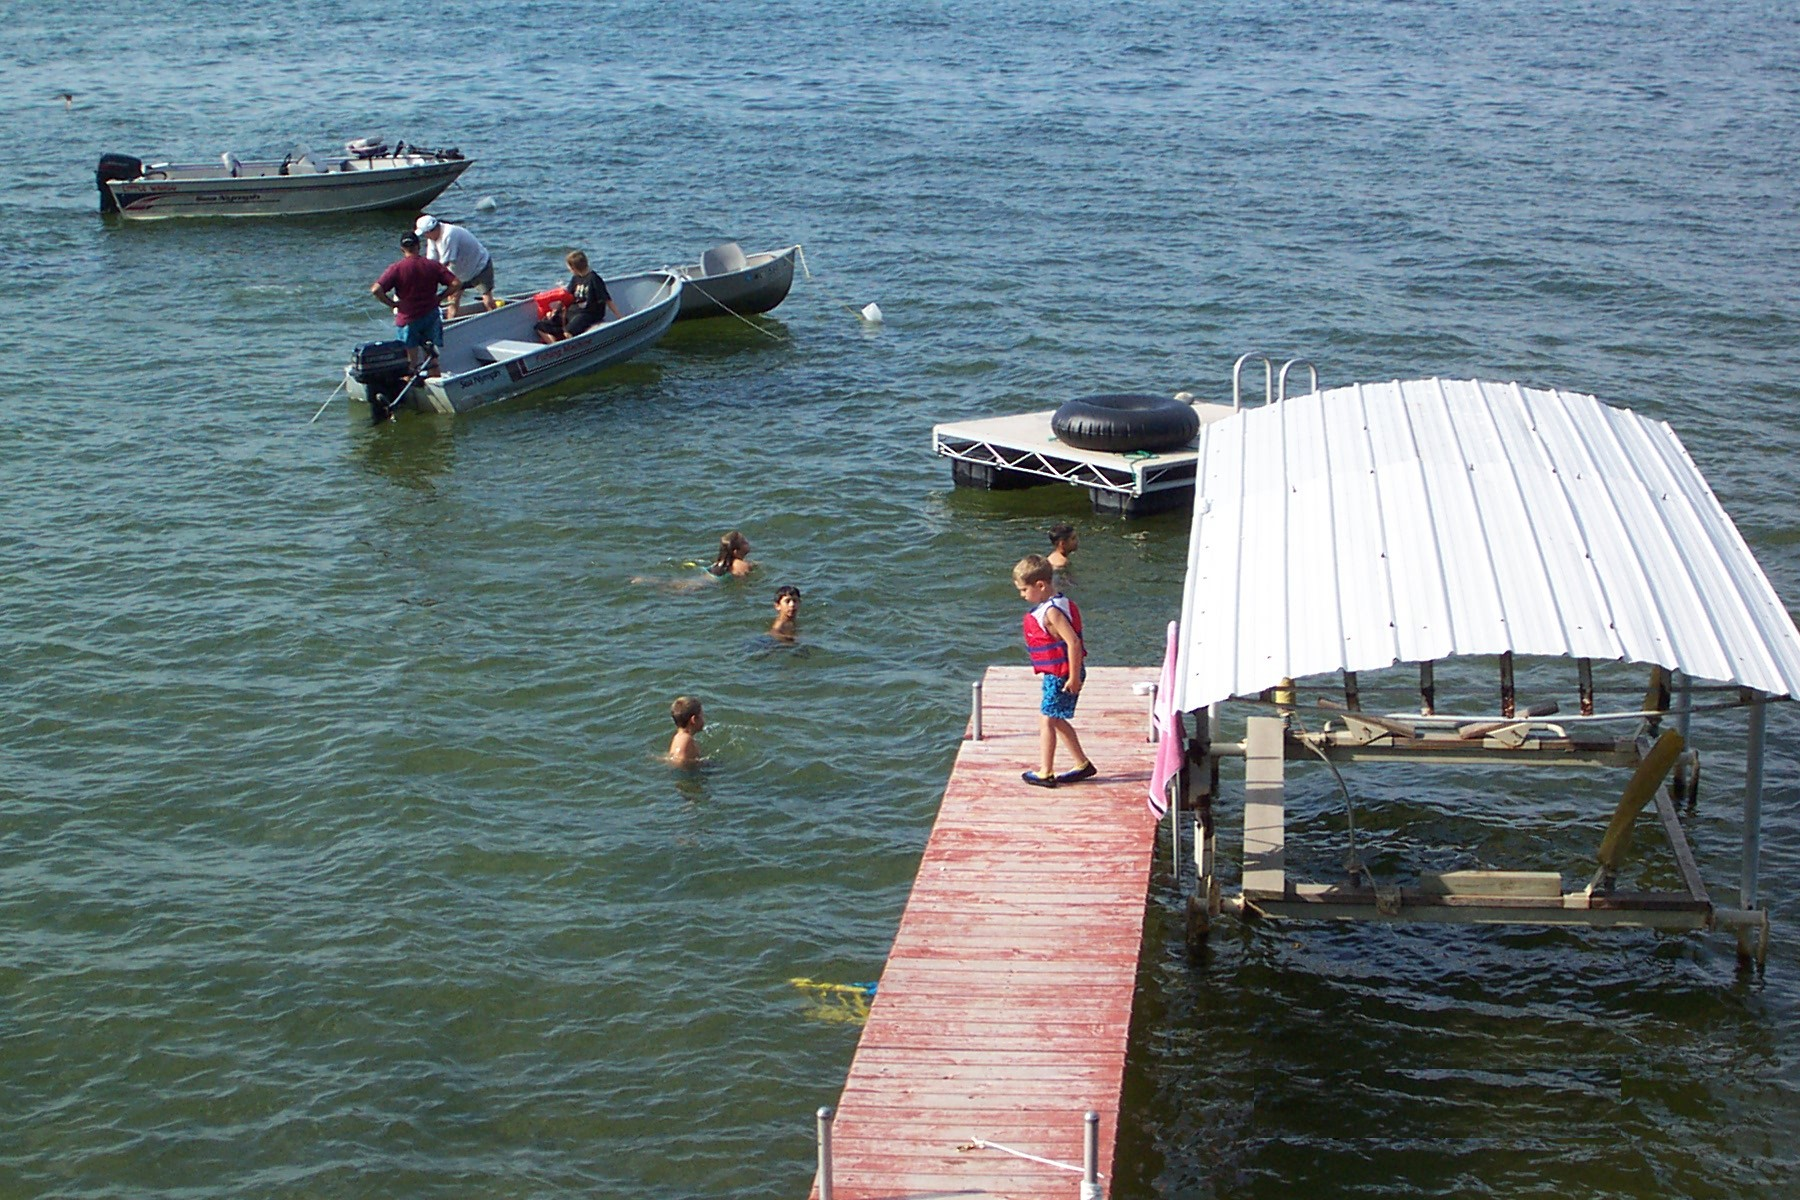 hubbard lake Best things to do in hubbard lake, michigan with photos, attraction map & a detailed guide get a list of 11 tourist attractions in hubbard lake and handpicked activities.